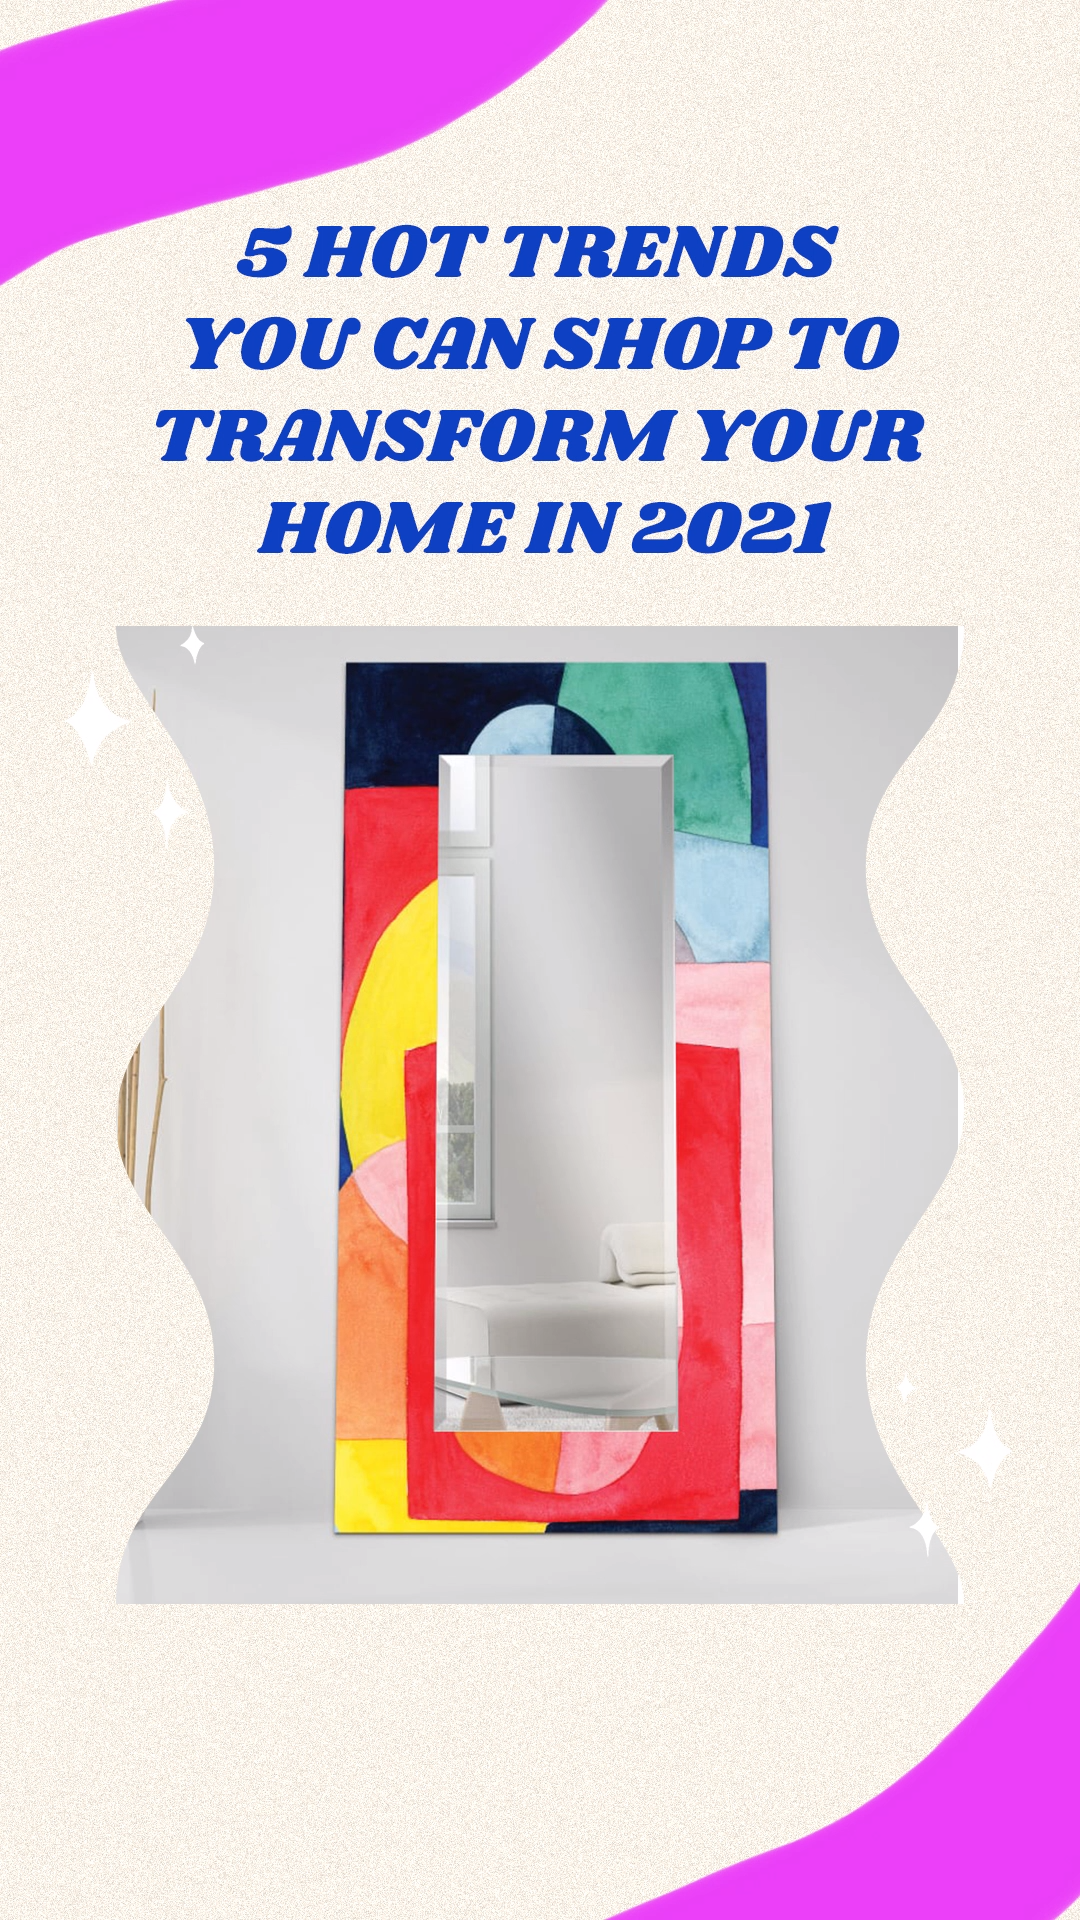 Hot Trends To Transform Your Home in 2021